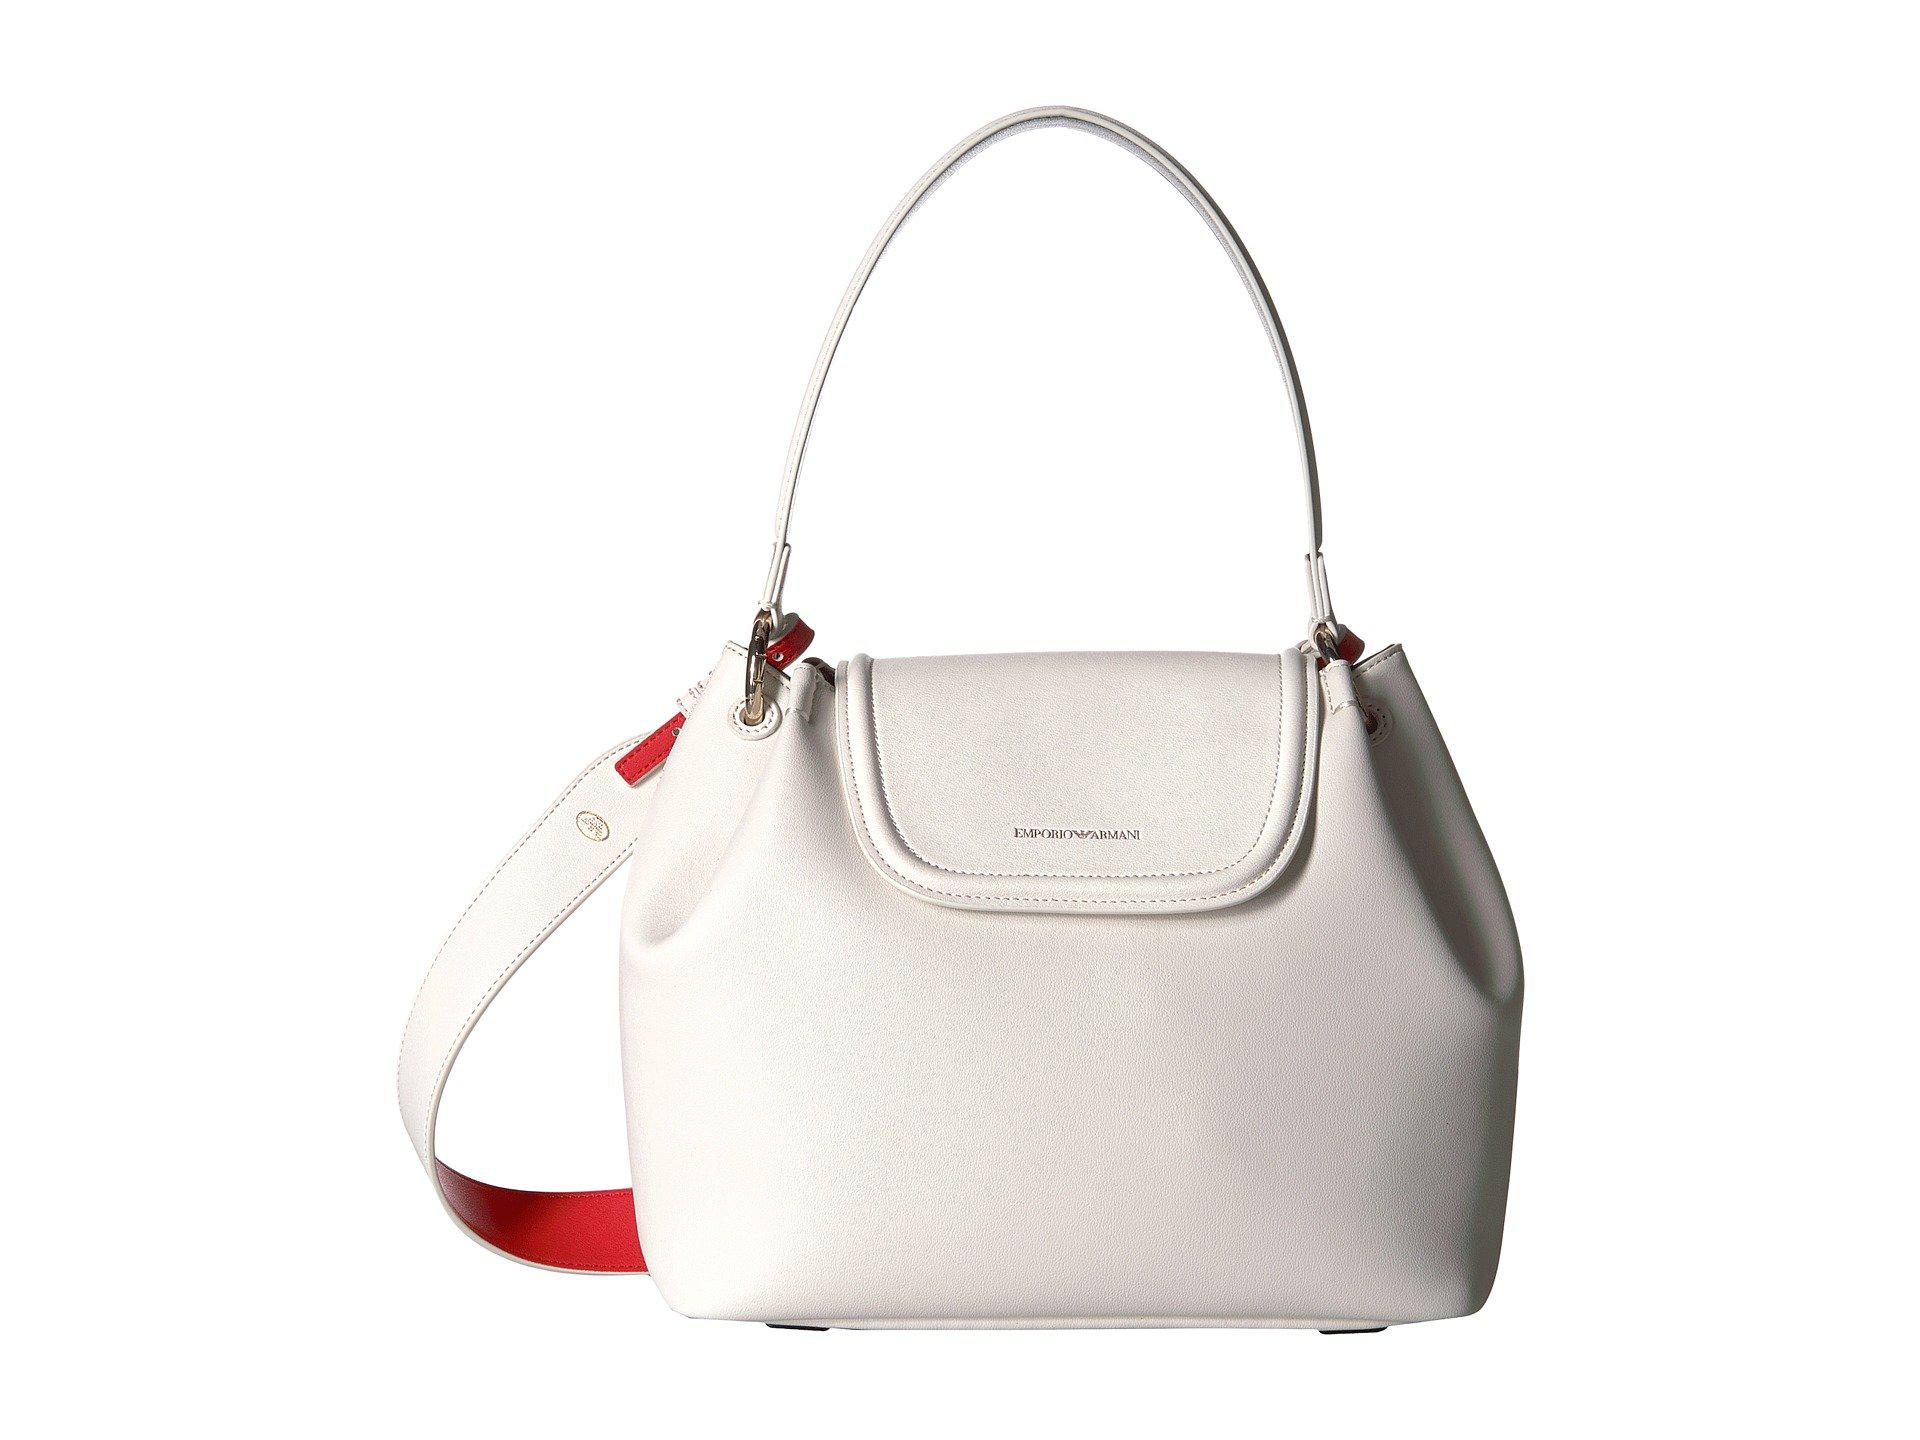 da4cb0d2a24 Lyst - Emporio Armani Eco Leather Shoulder Bag in White